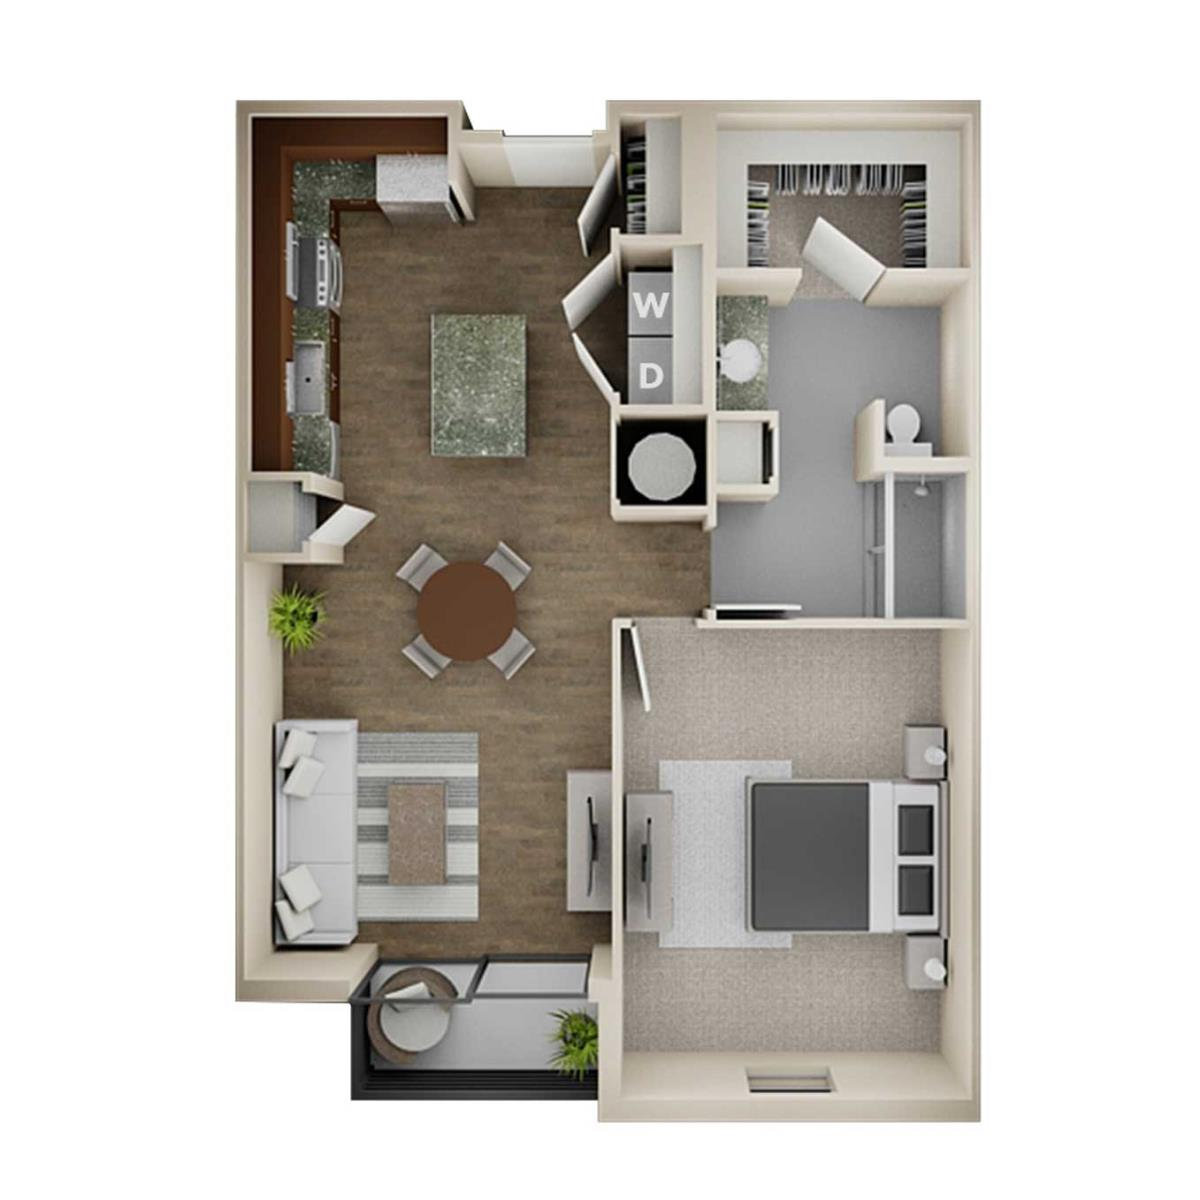 800 sq. ft. 1A Alt 2 floor plan